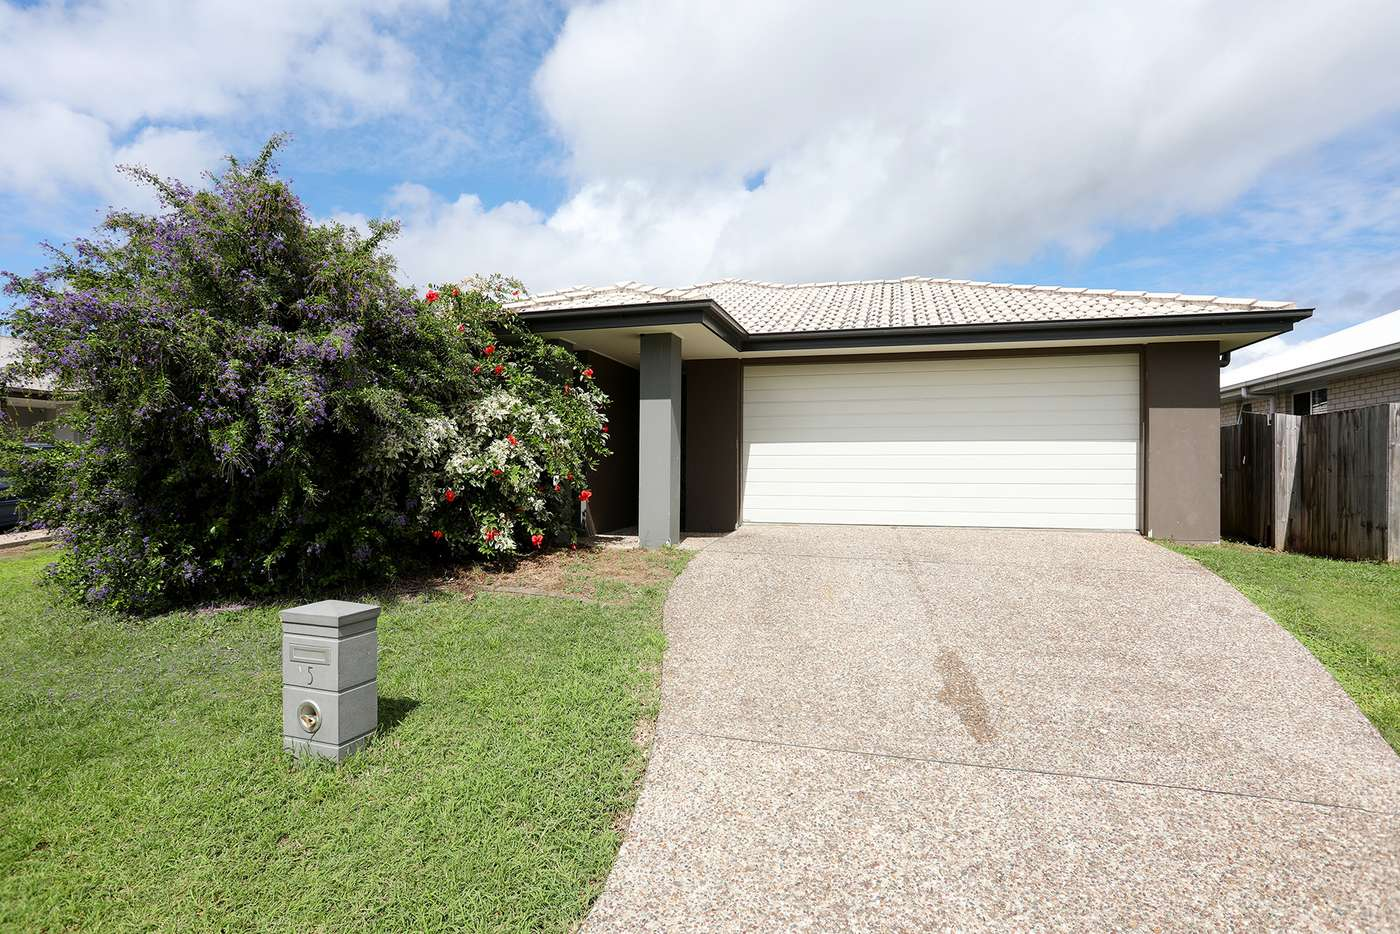 Main view of Homely house listing, 5 Wilkie Street, Bannockburn QLD 4207